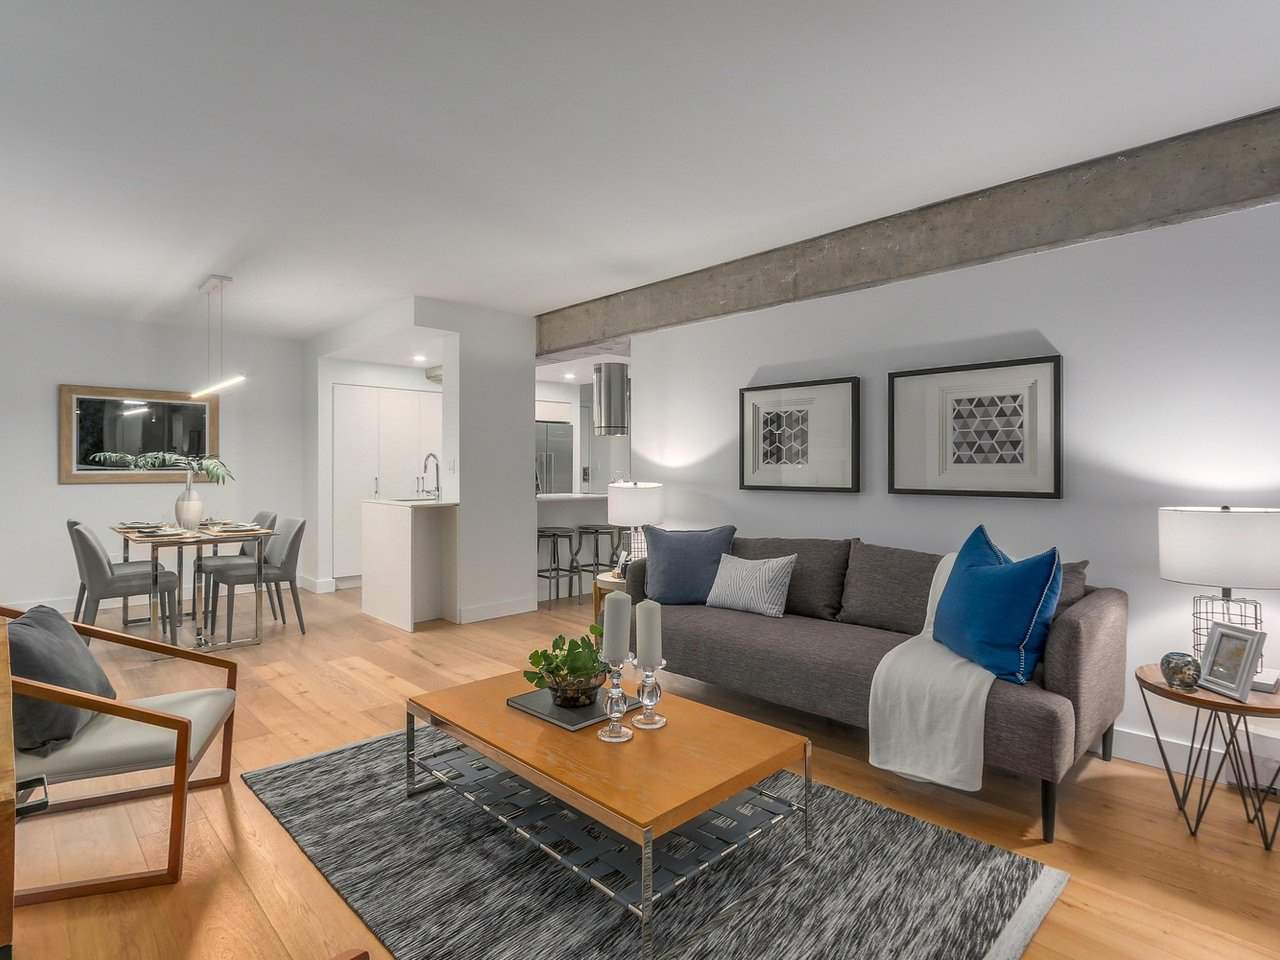 """Main Photo: 301 1616 W 13 Avenue in Vancouver: Fairview VW Condo for sale in """"LOWER SHAUGHNESSY"""" (Vancouver West)  : MLS®# R2305029"""